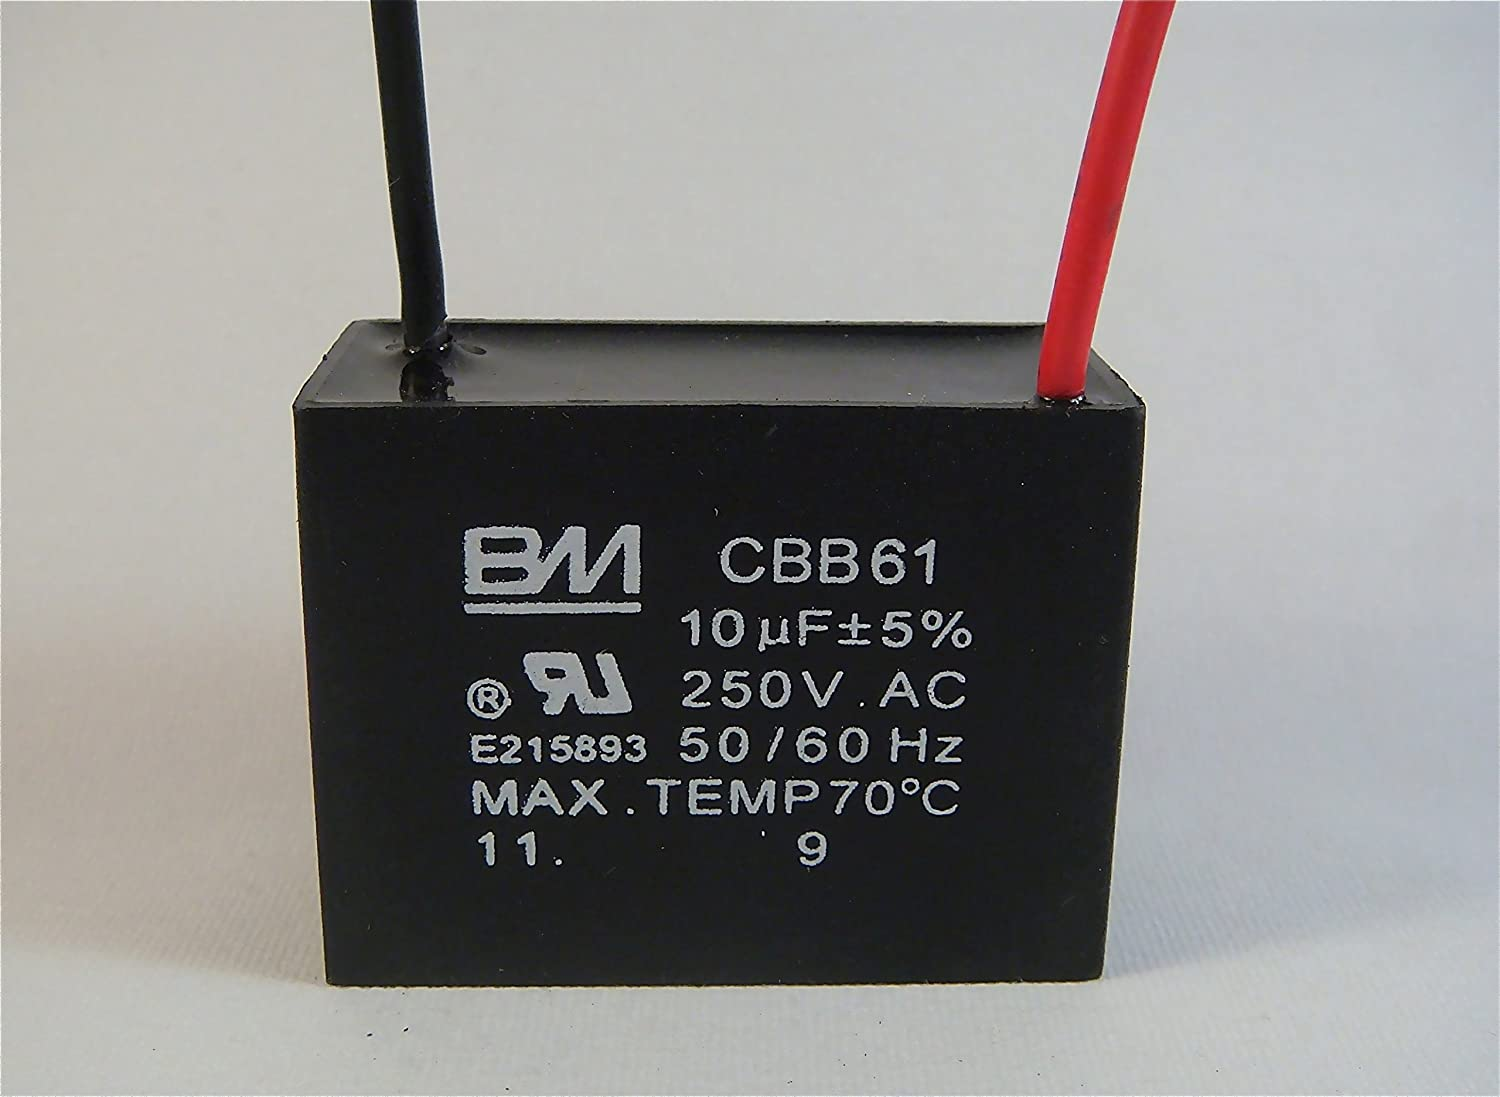 FAN CAPACITOR CBB61 10uf 250V 2 WIRE: Amazon.com: Industrial ...